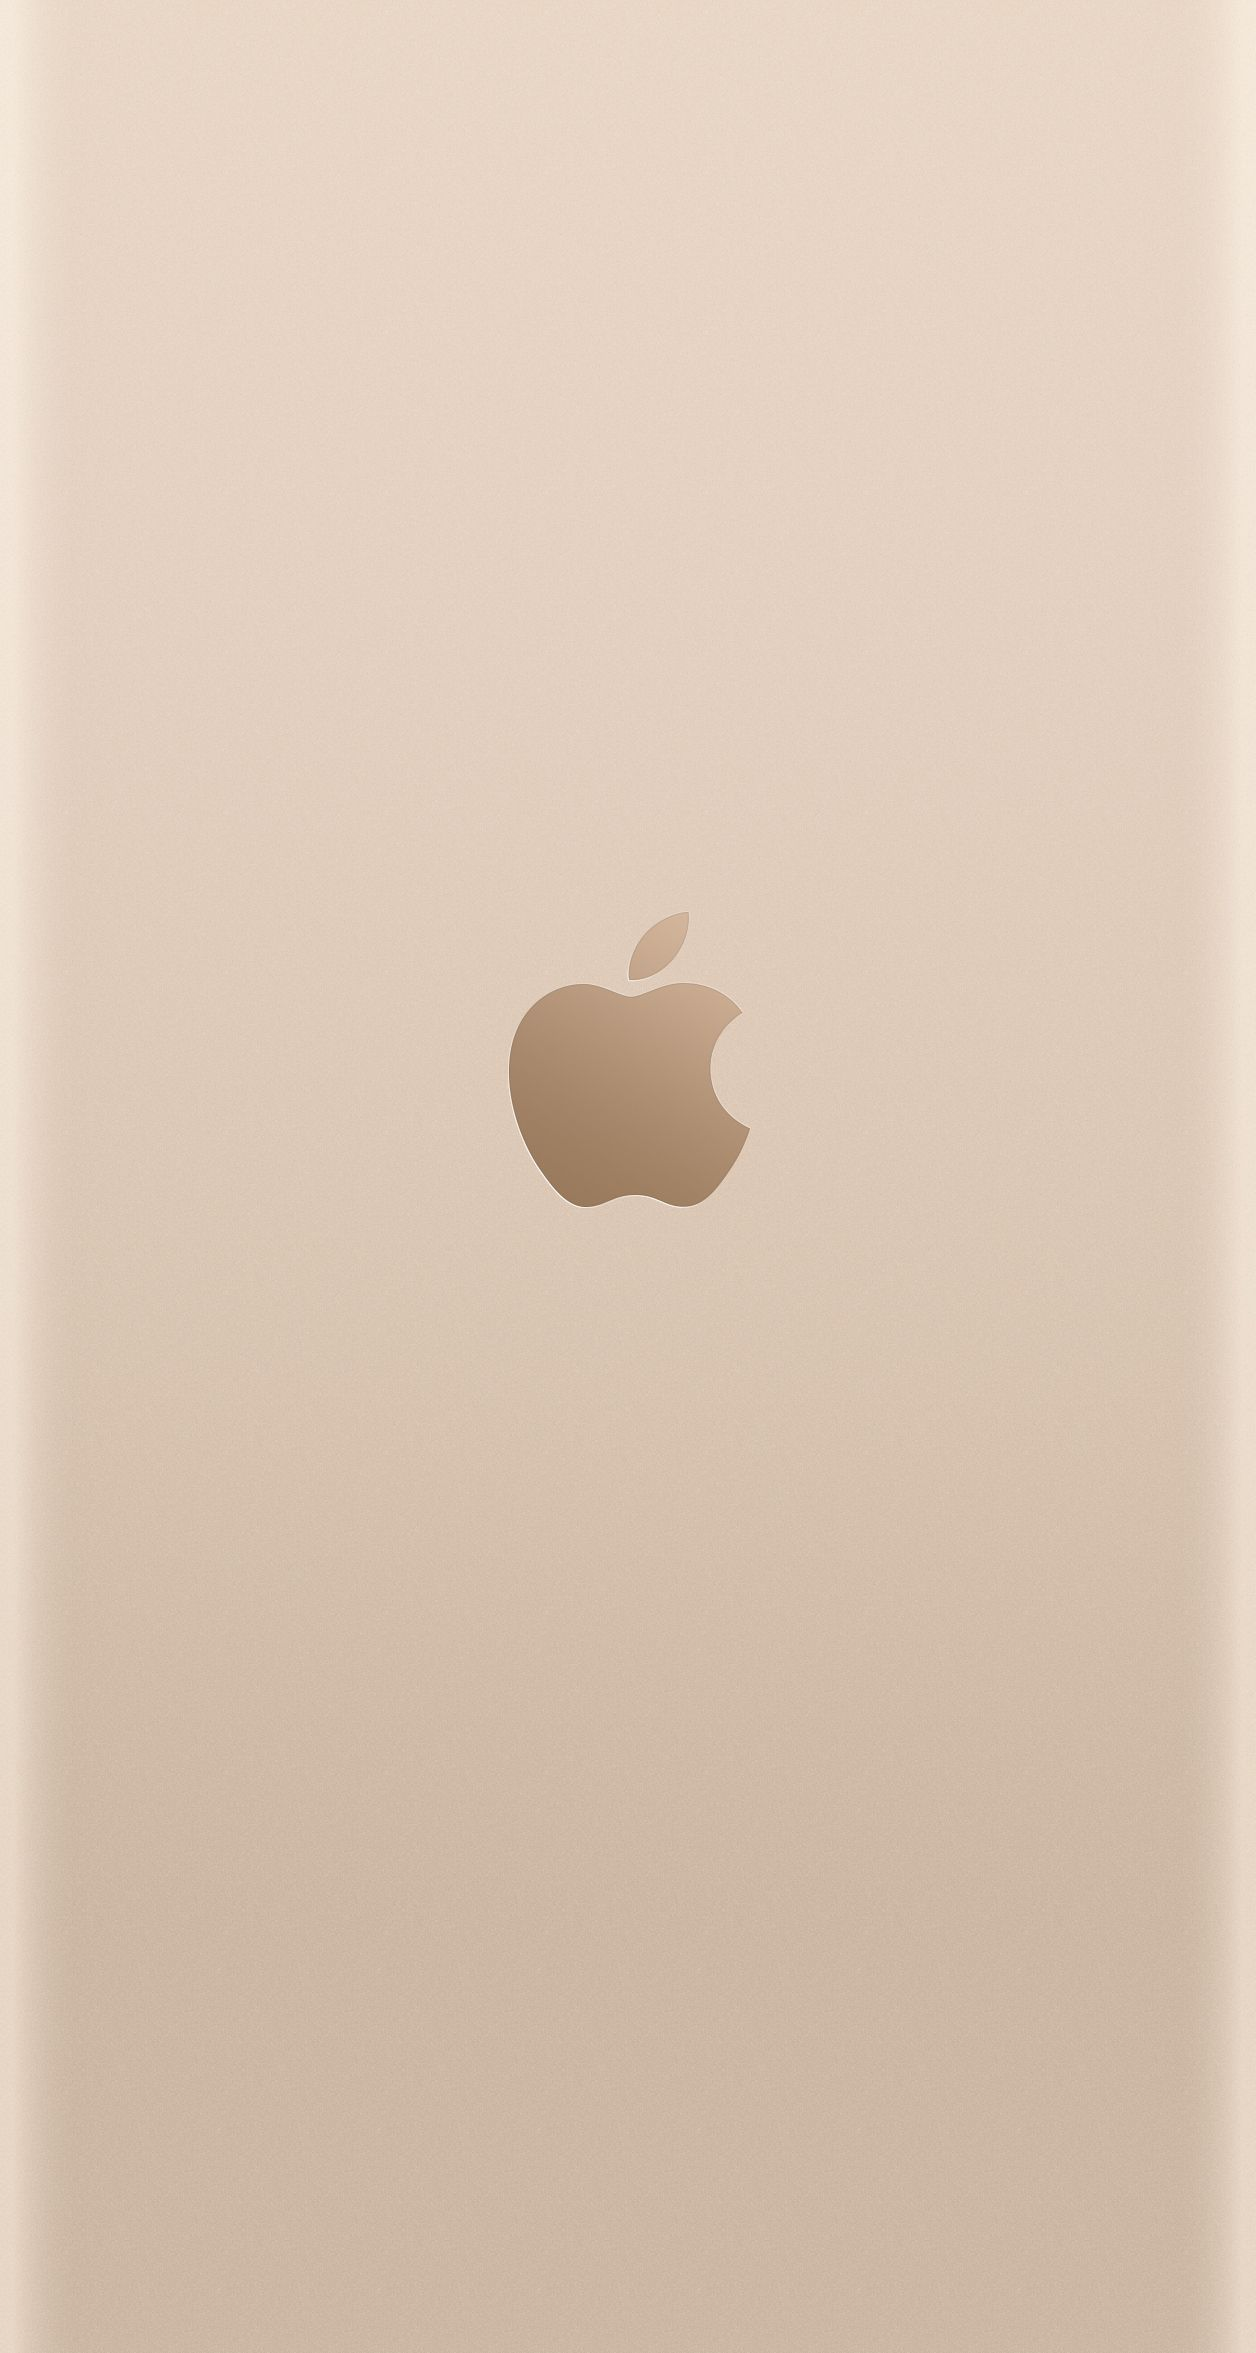 Pin By Abhishek Parab On Iphone 6s Gold Wallpaper Pinterest